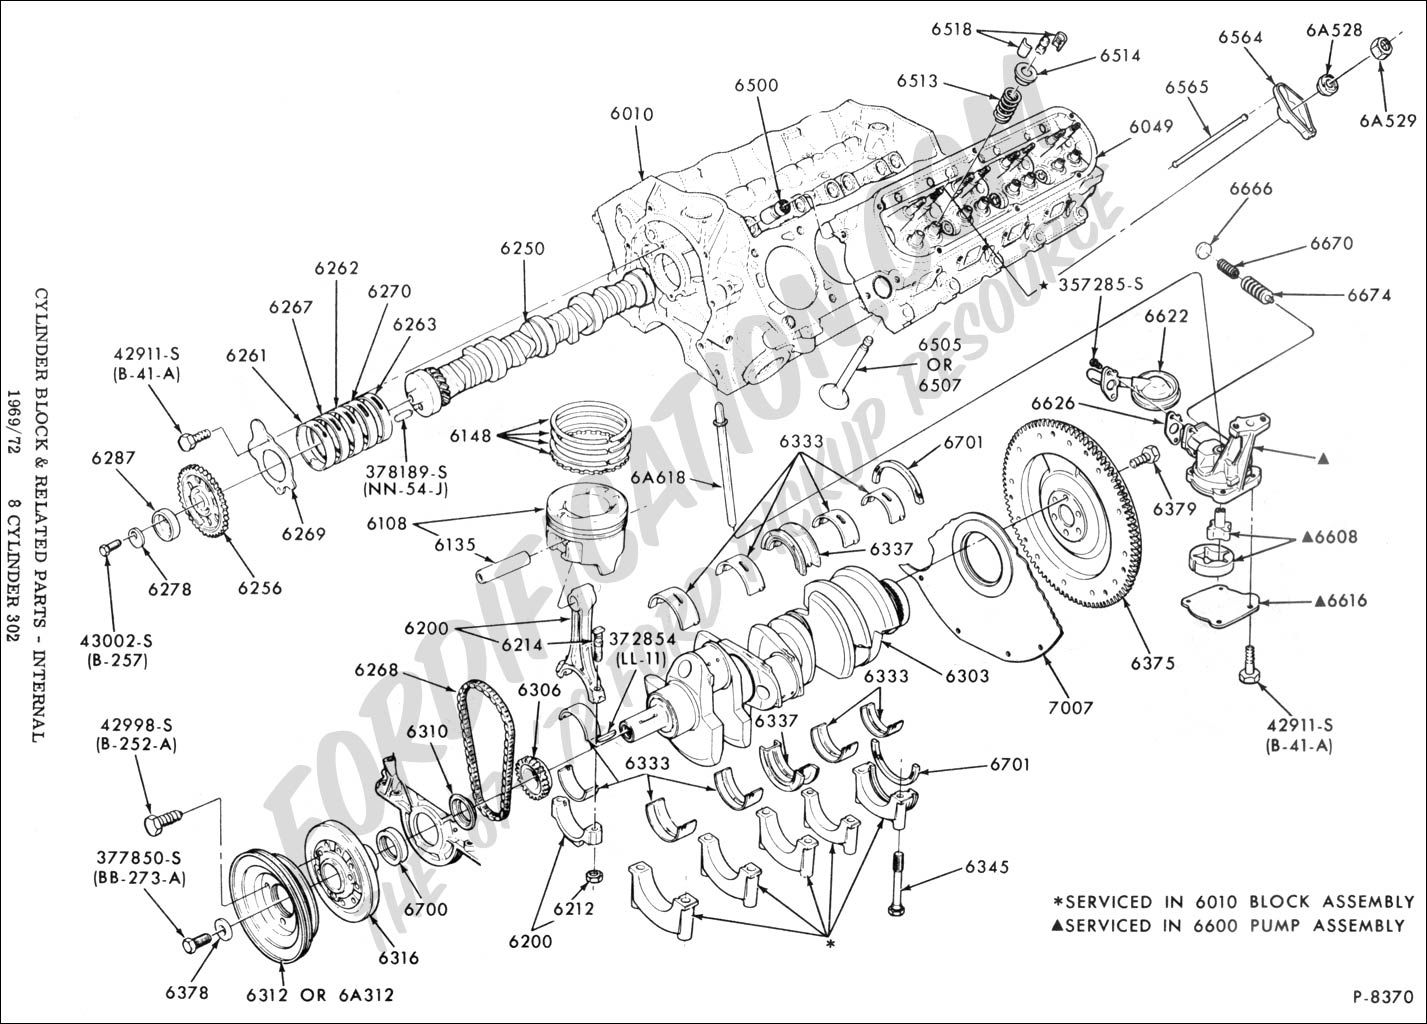 Ford 302 Engine Parts Diagram 12 Volt Ammeter Wiring Best Library Image Result For List Gt40 Pinterest Rh Com Ho Official